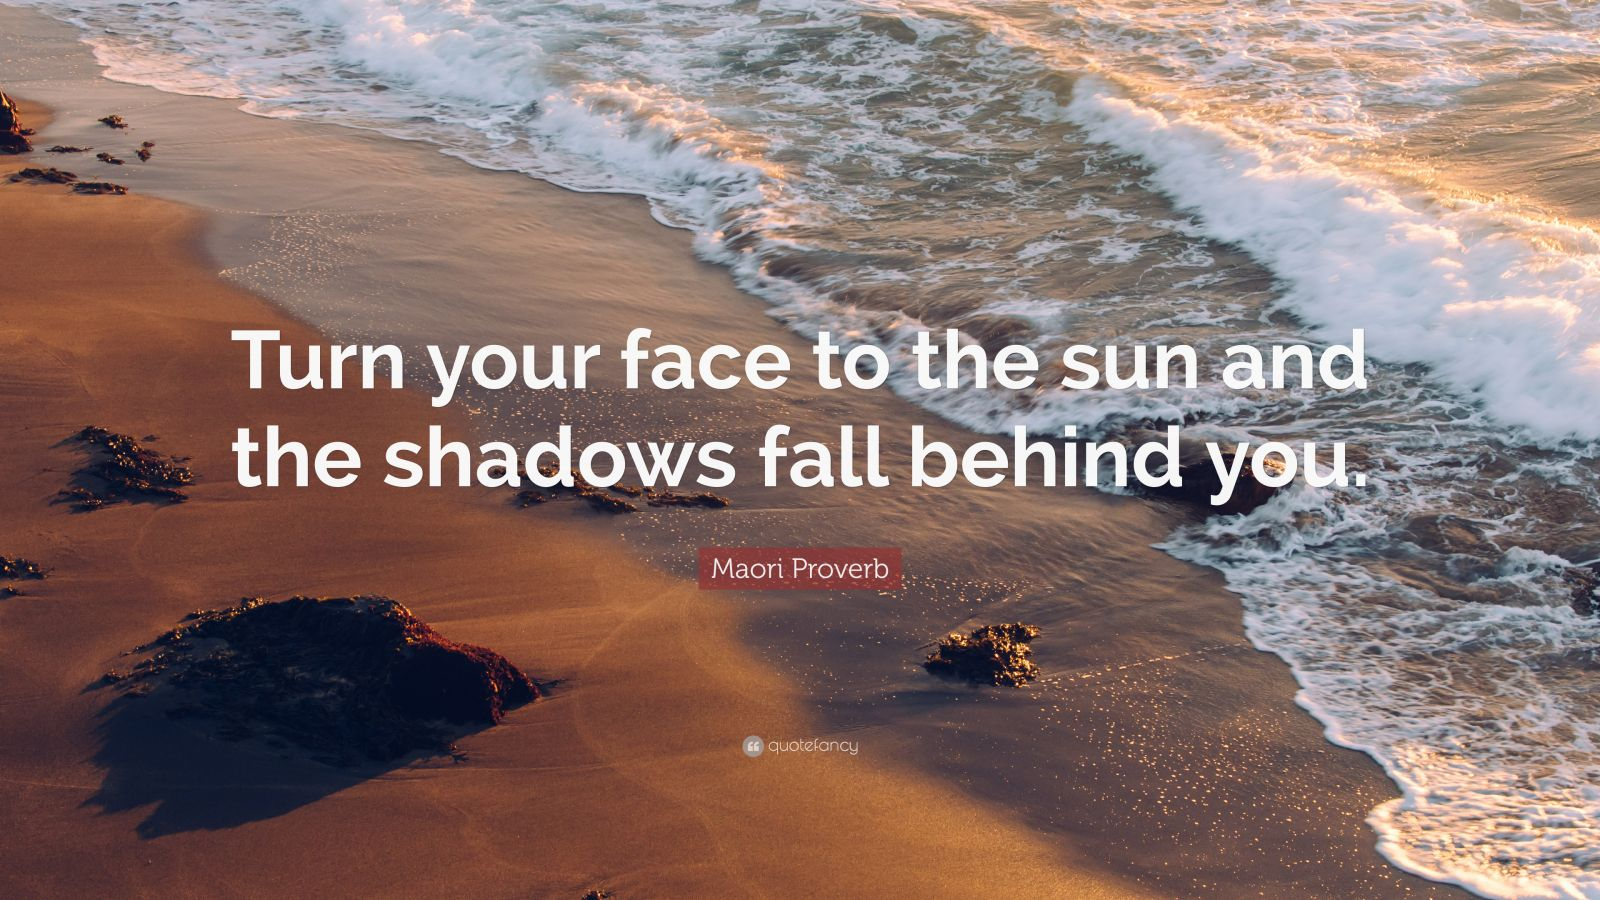 Wallpaper Hello Fall Maori Proverb Quote Turn Your Face To The Sun And The